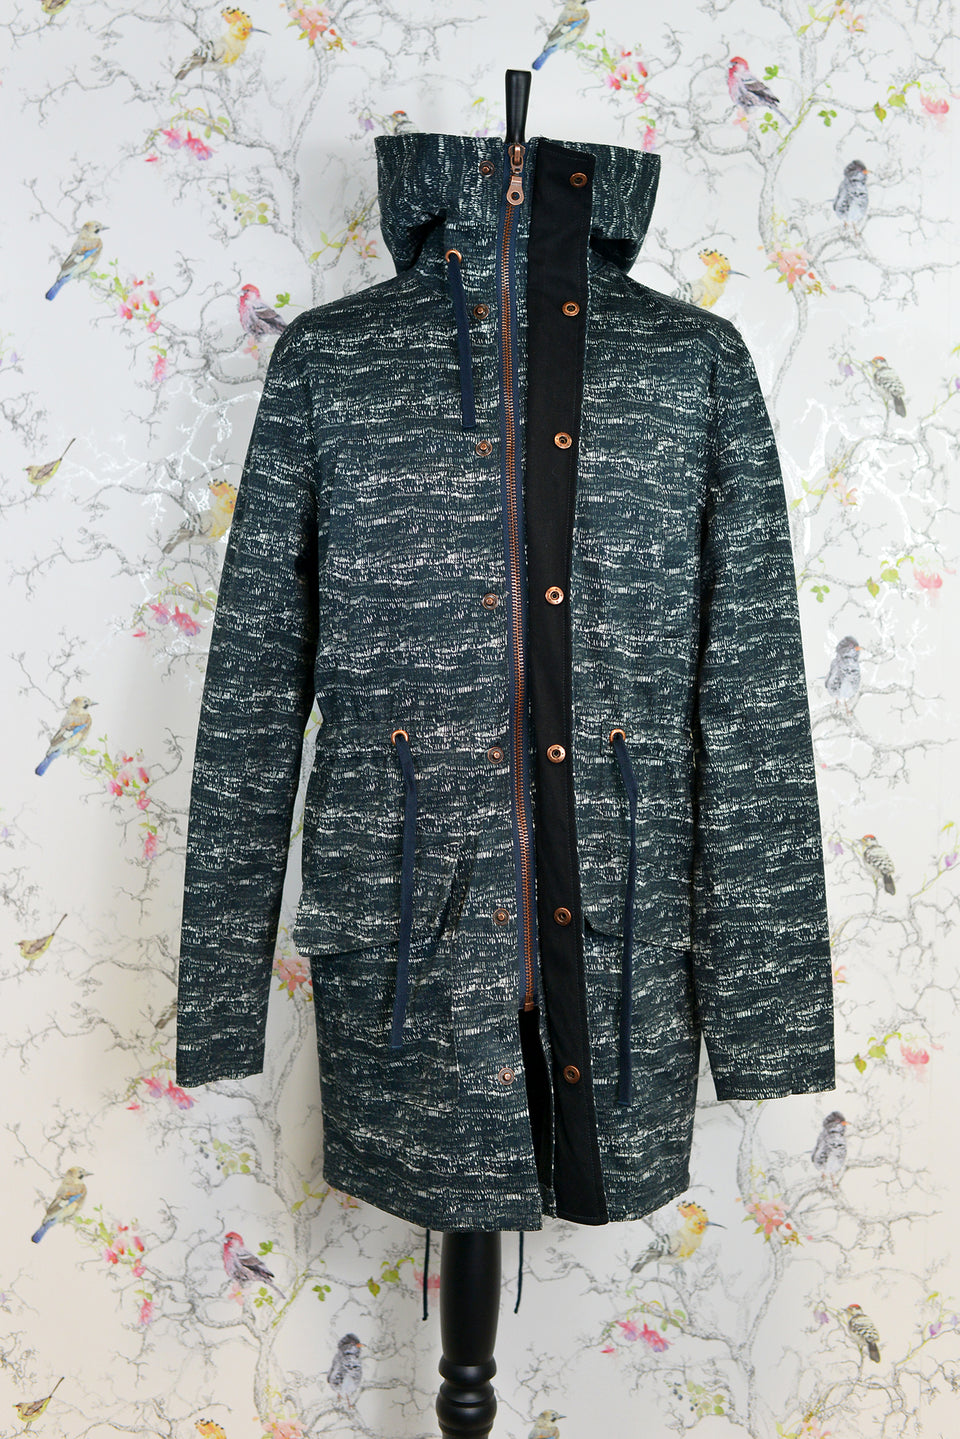 RIVER ISLAND Men's Speckled Camouflage Hooded Parka Coat, Size M. Pre-loved.